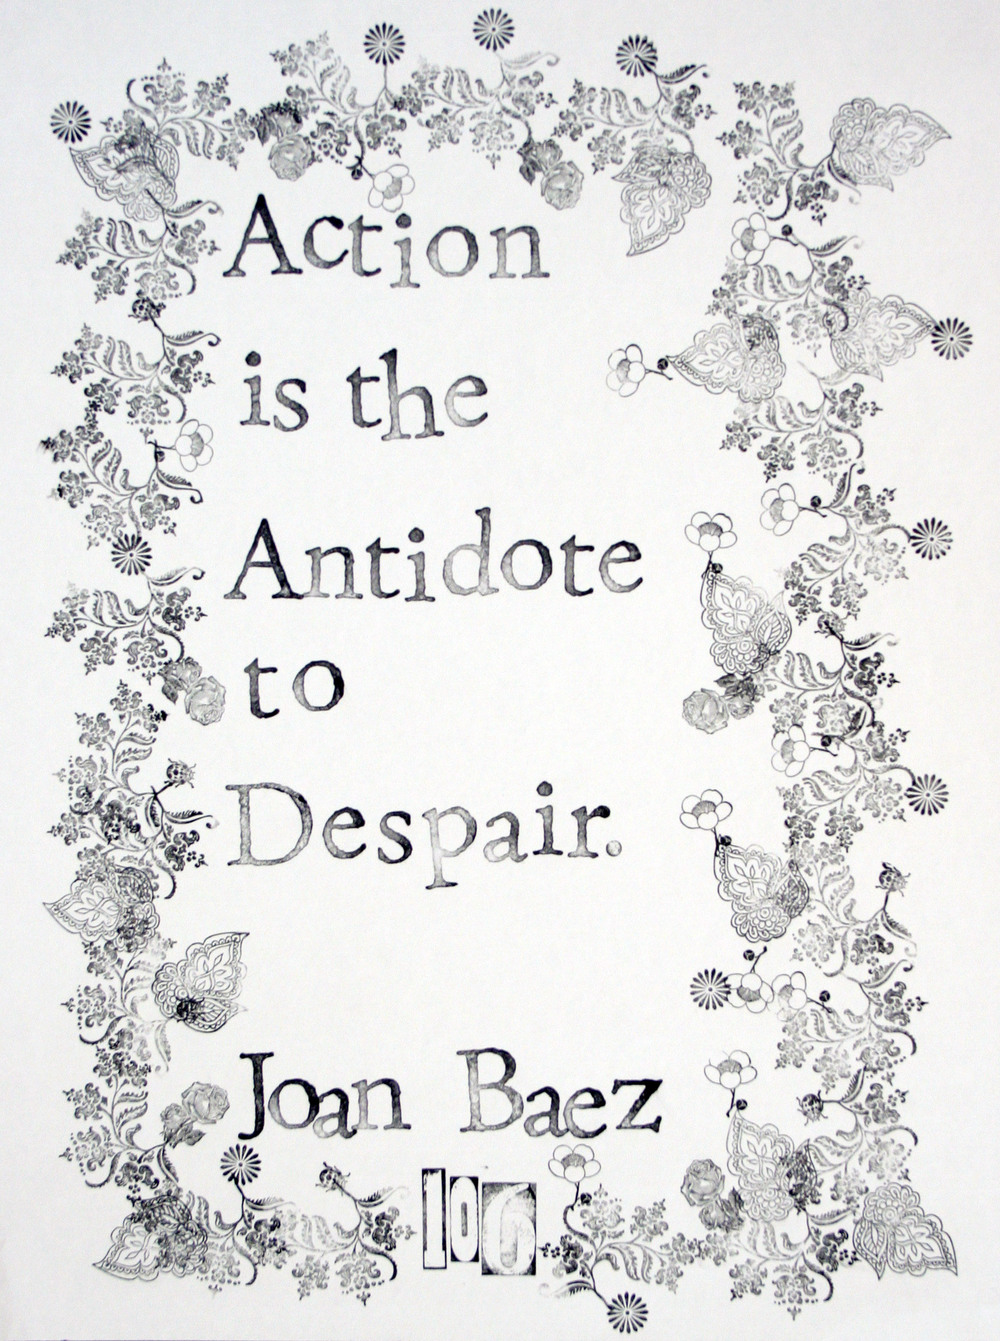 """Action is the antidote to despair."" -Joan Baez"